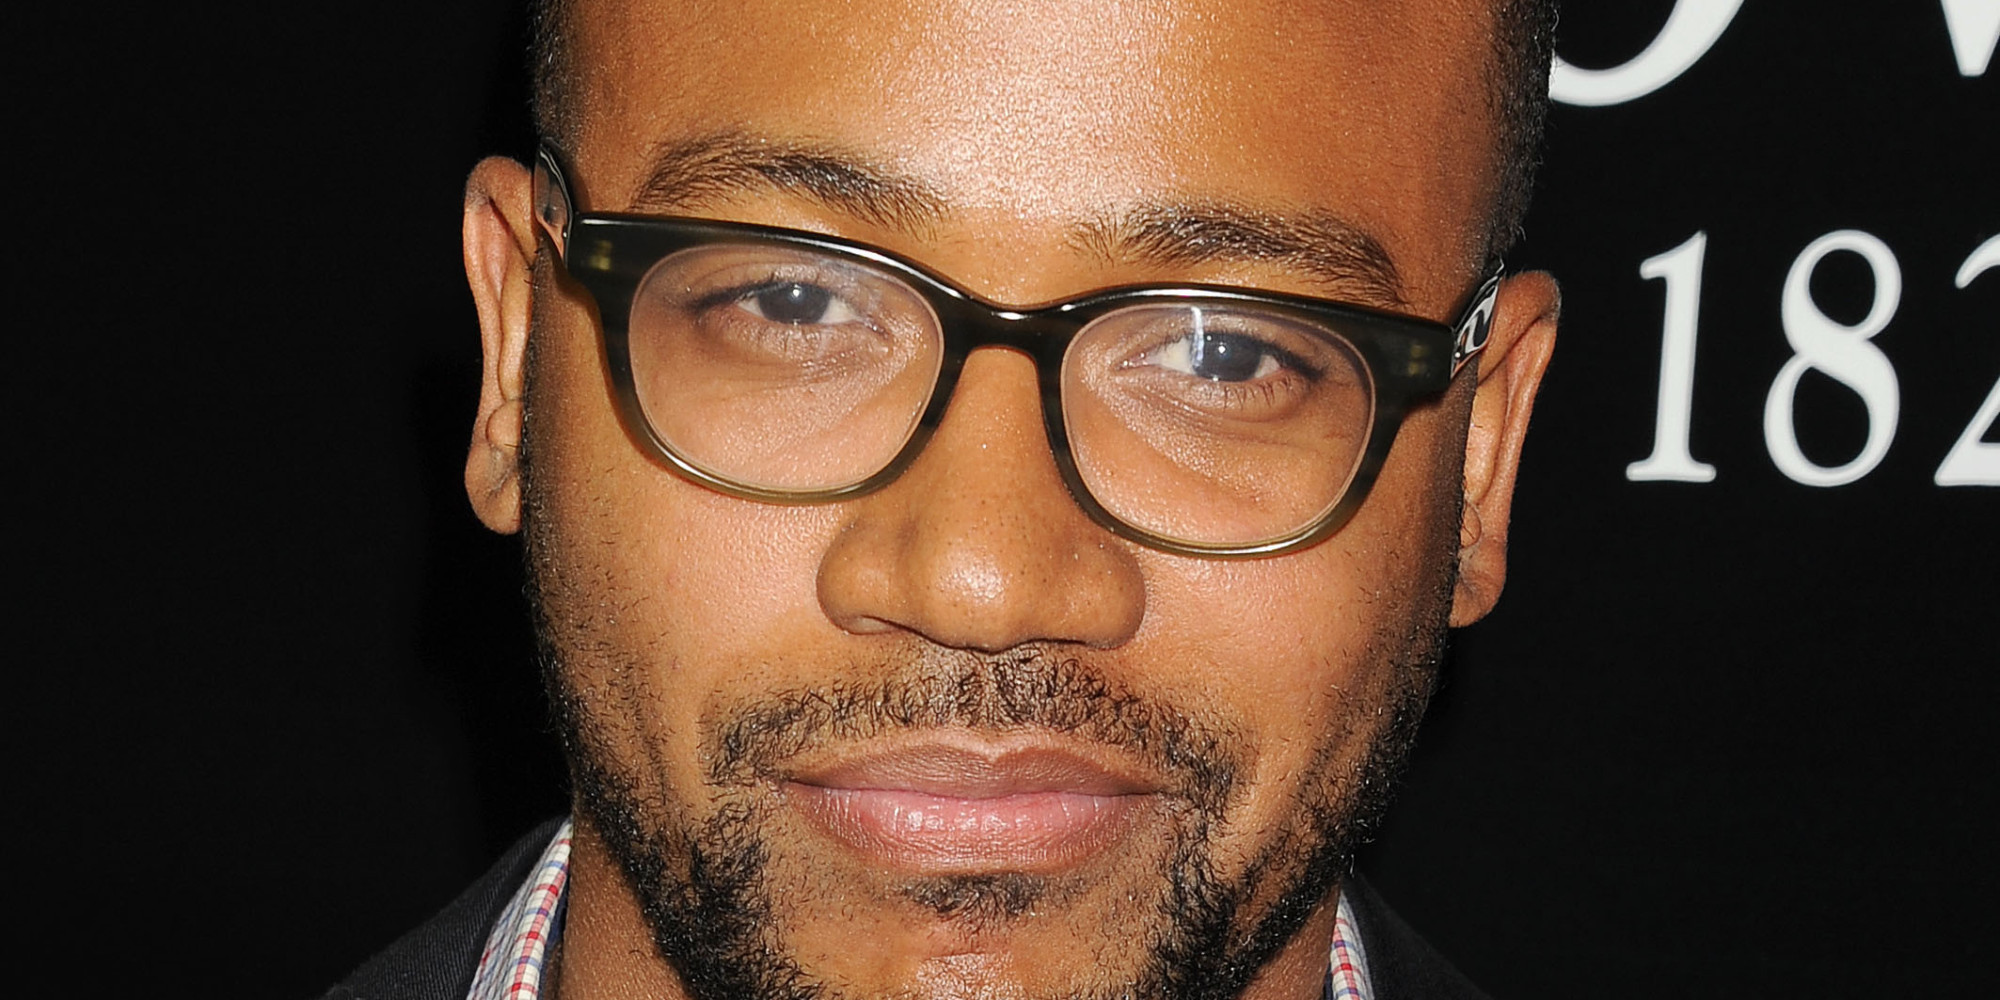 columbus short wifecolumbus short biography, columbus short movies, columbus short height, columbus short facebook, columbus short instagram, columbus short, columbus short north, columbus short dancing, columbus short imdb, columbus short and britney spears, columbus short mr right, columbus short and chris brown, columbus short net worth, columbus short wife, columbus short and karrine steffans, columbus short and karrine, columbus short twitter, columbus short north restaurants, columbus short domestic violence, columbus short 2015